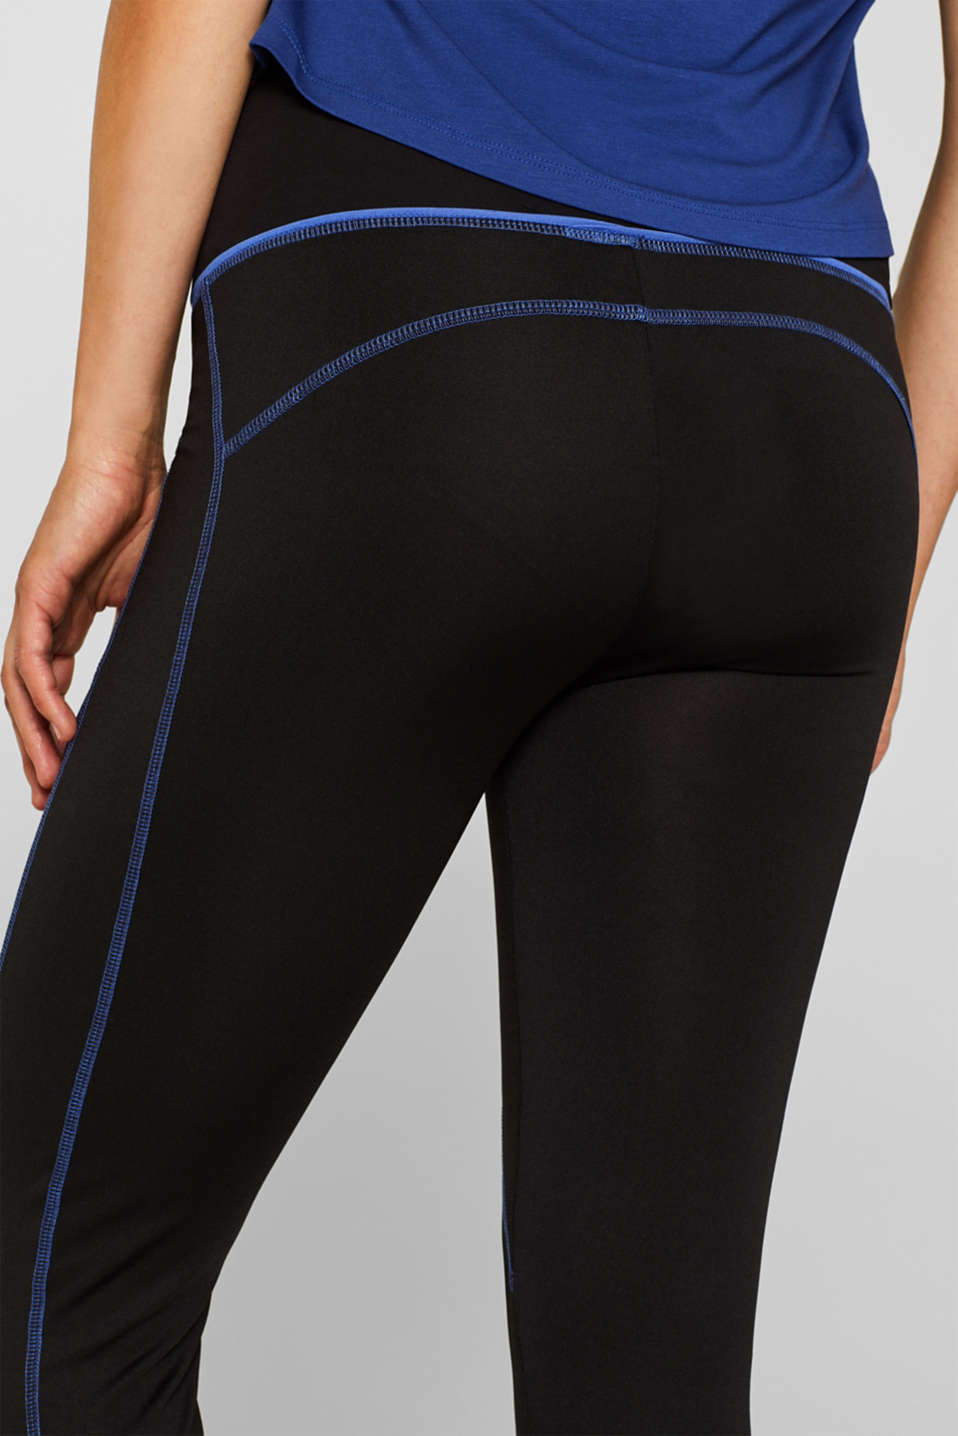 Leggings with contrasting stitching, over-bump waistband, LCBLACK, detail image number 5